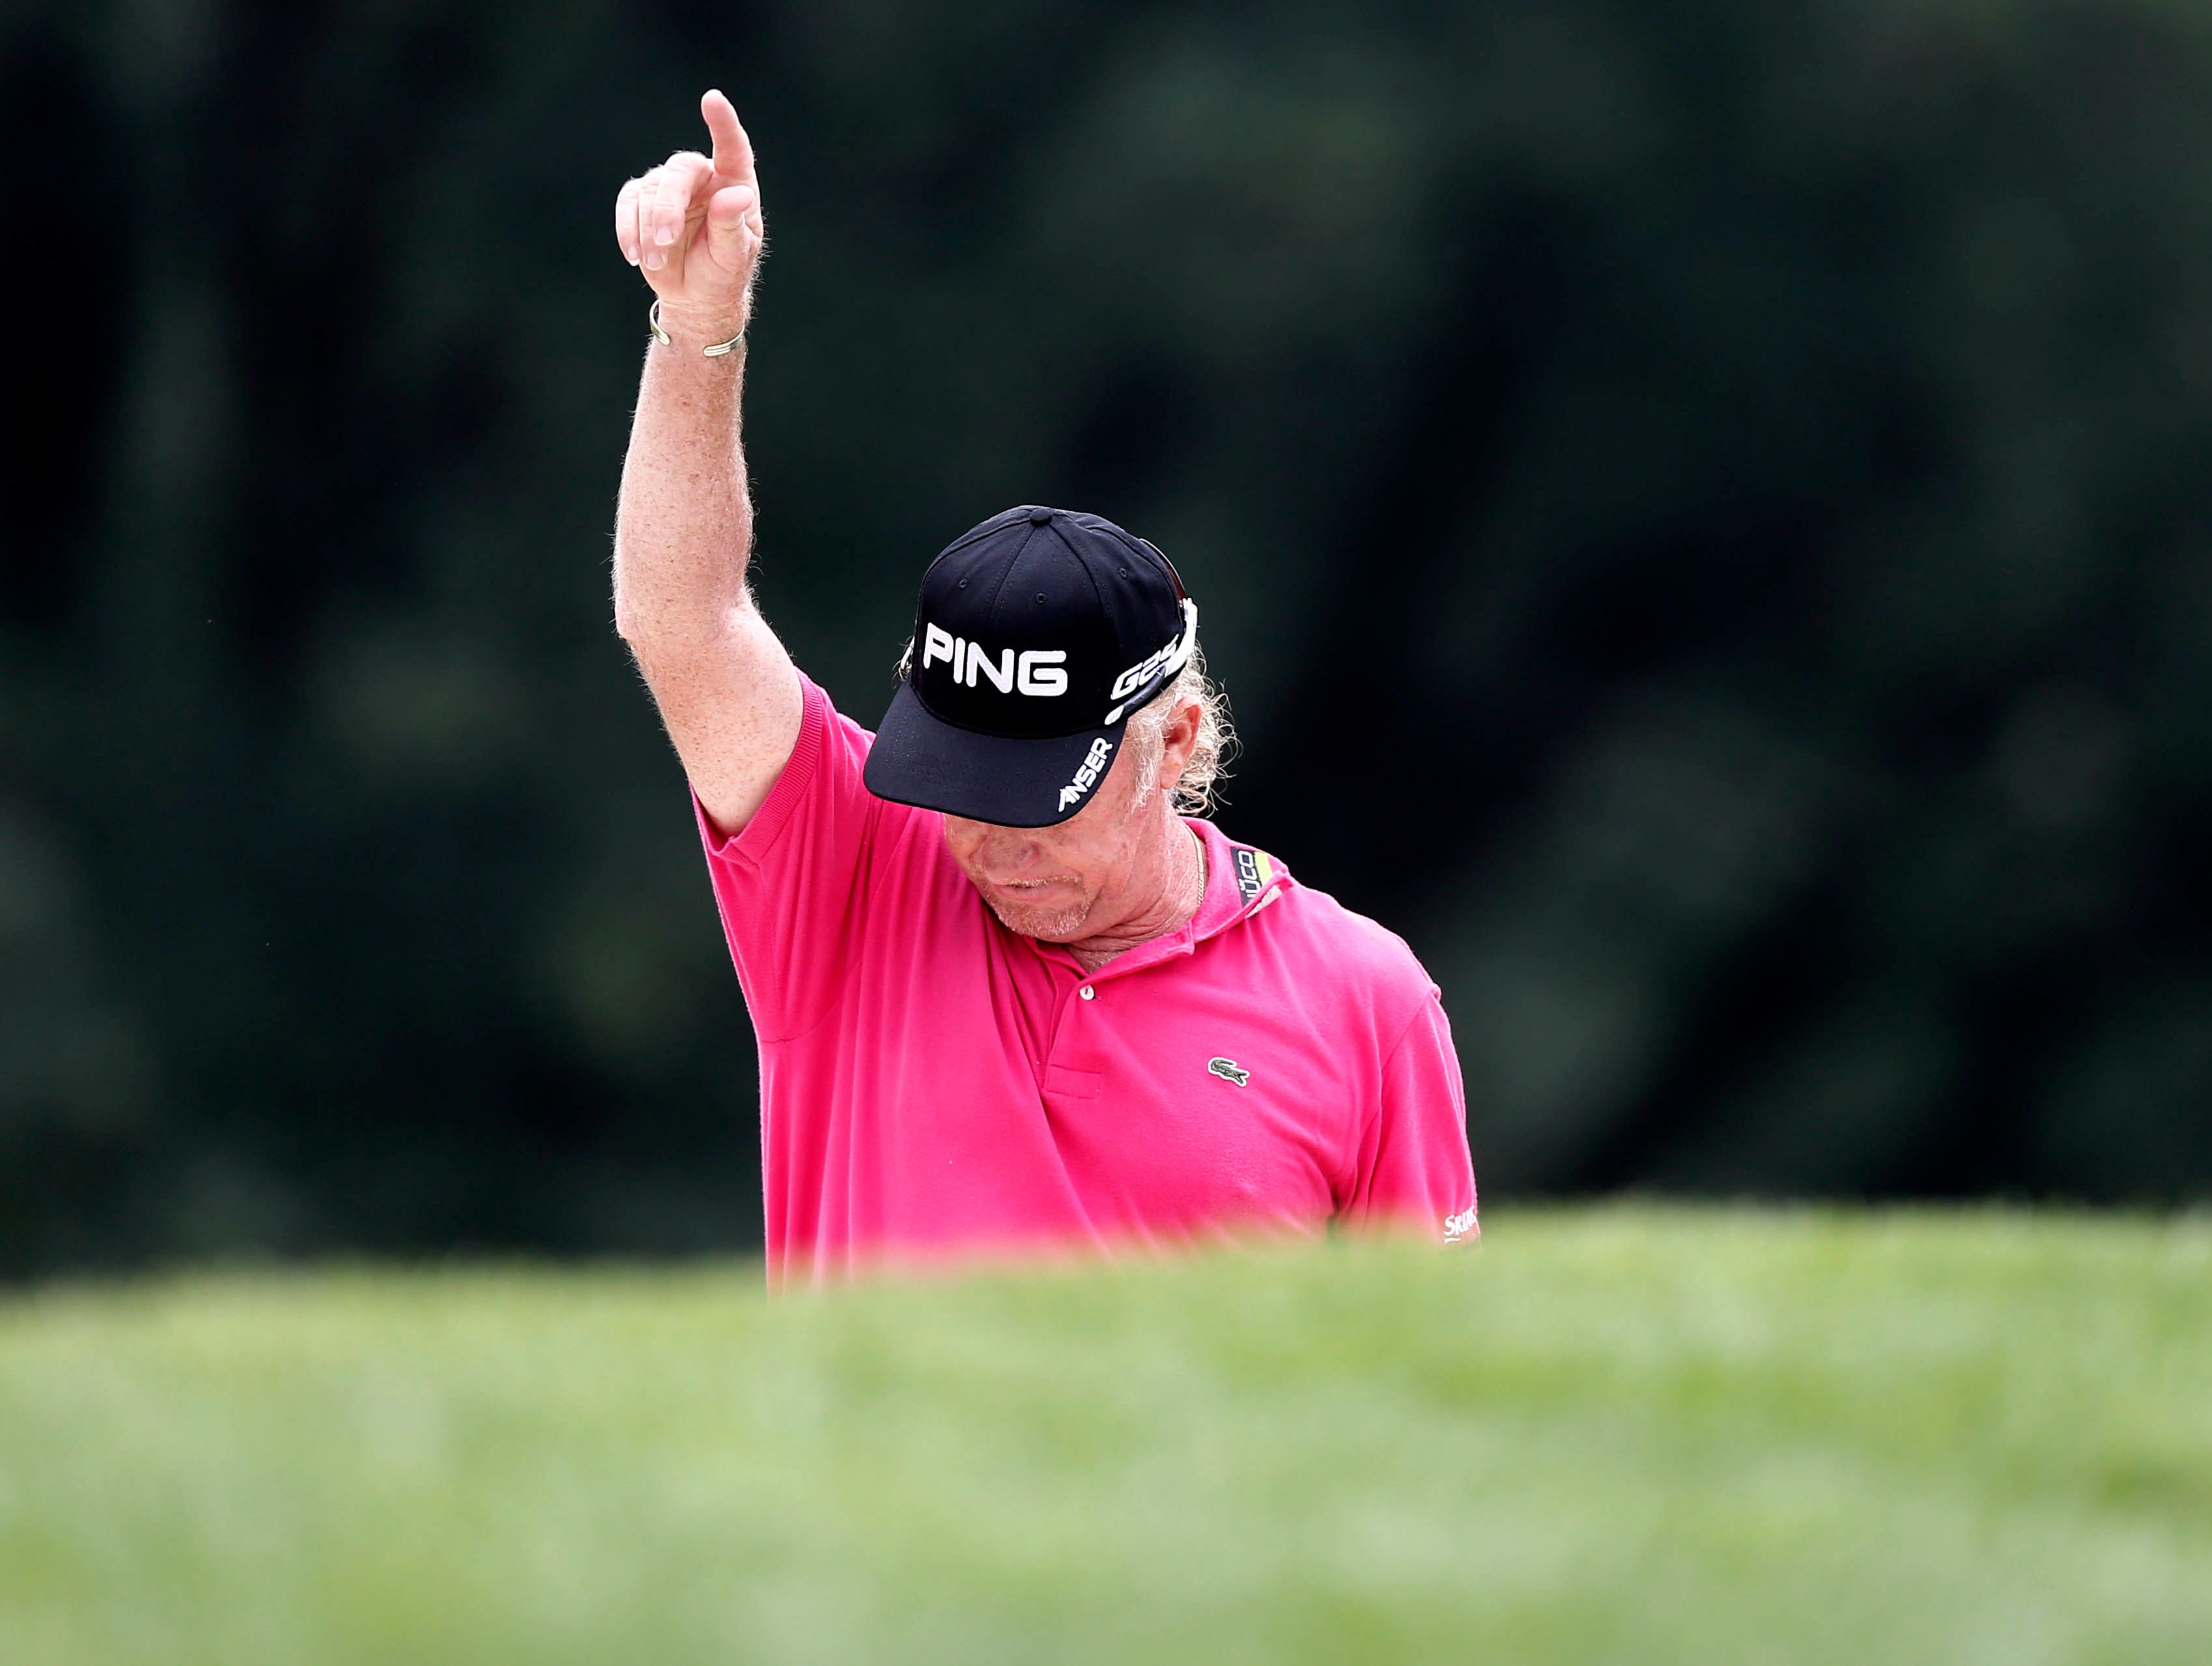 Miguel Angel Jimenez holes outfrom a bunker on the 9th hole.